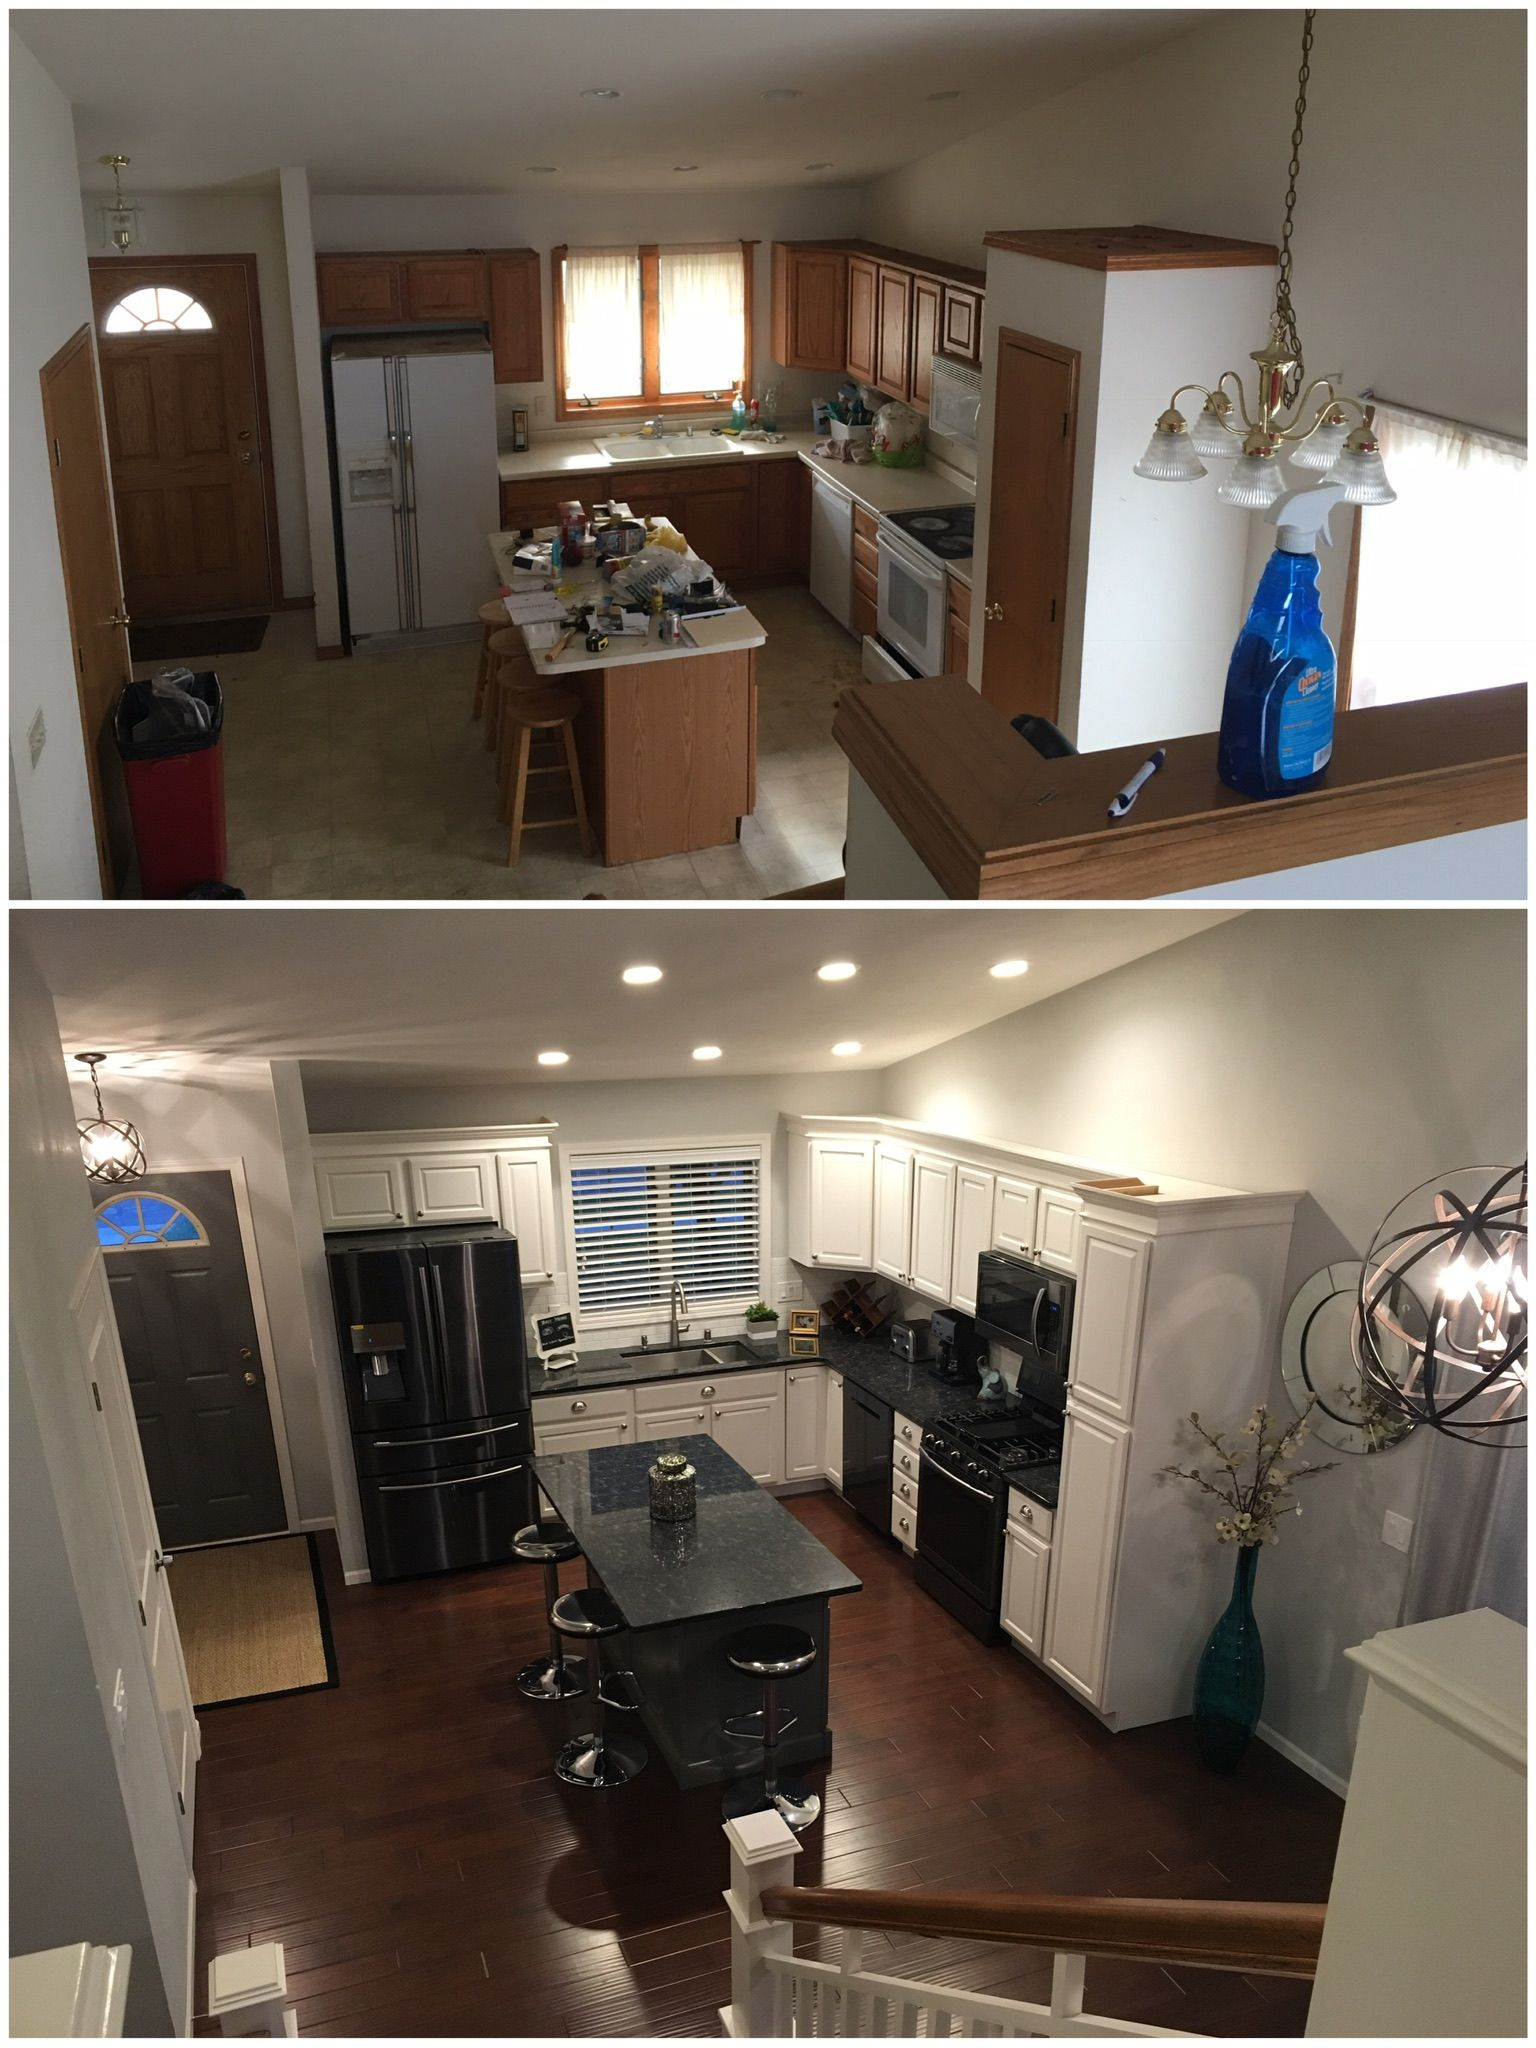 My Diy Kitchen Remodel Before And After Tri Level House Sherwin Williams Painted Oak Cabinets In Marshmallow Diy Kitchen Remodel Diy Kitchen Kitchen Remodel